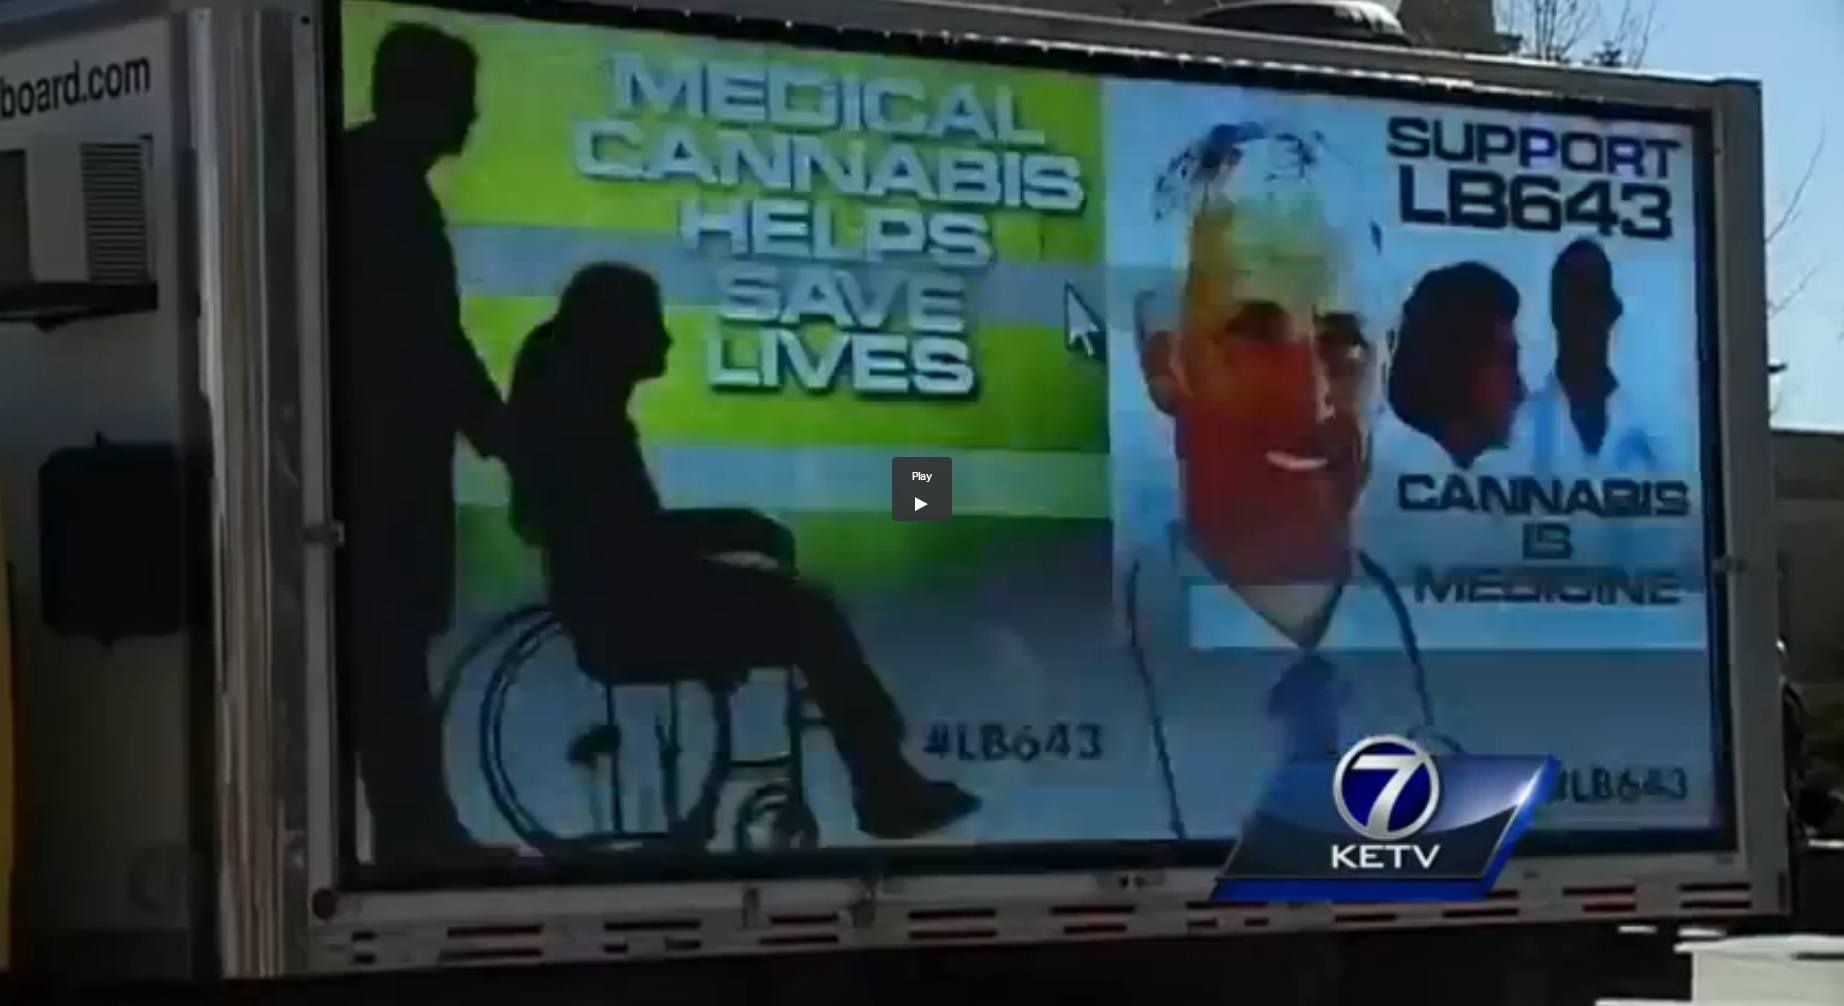 Image of Digital advertising truck promoting legalized medical marijuana in Nebraska